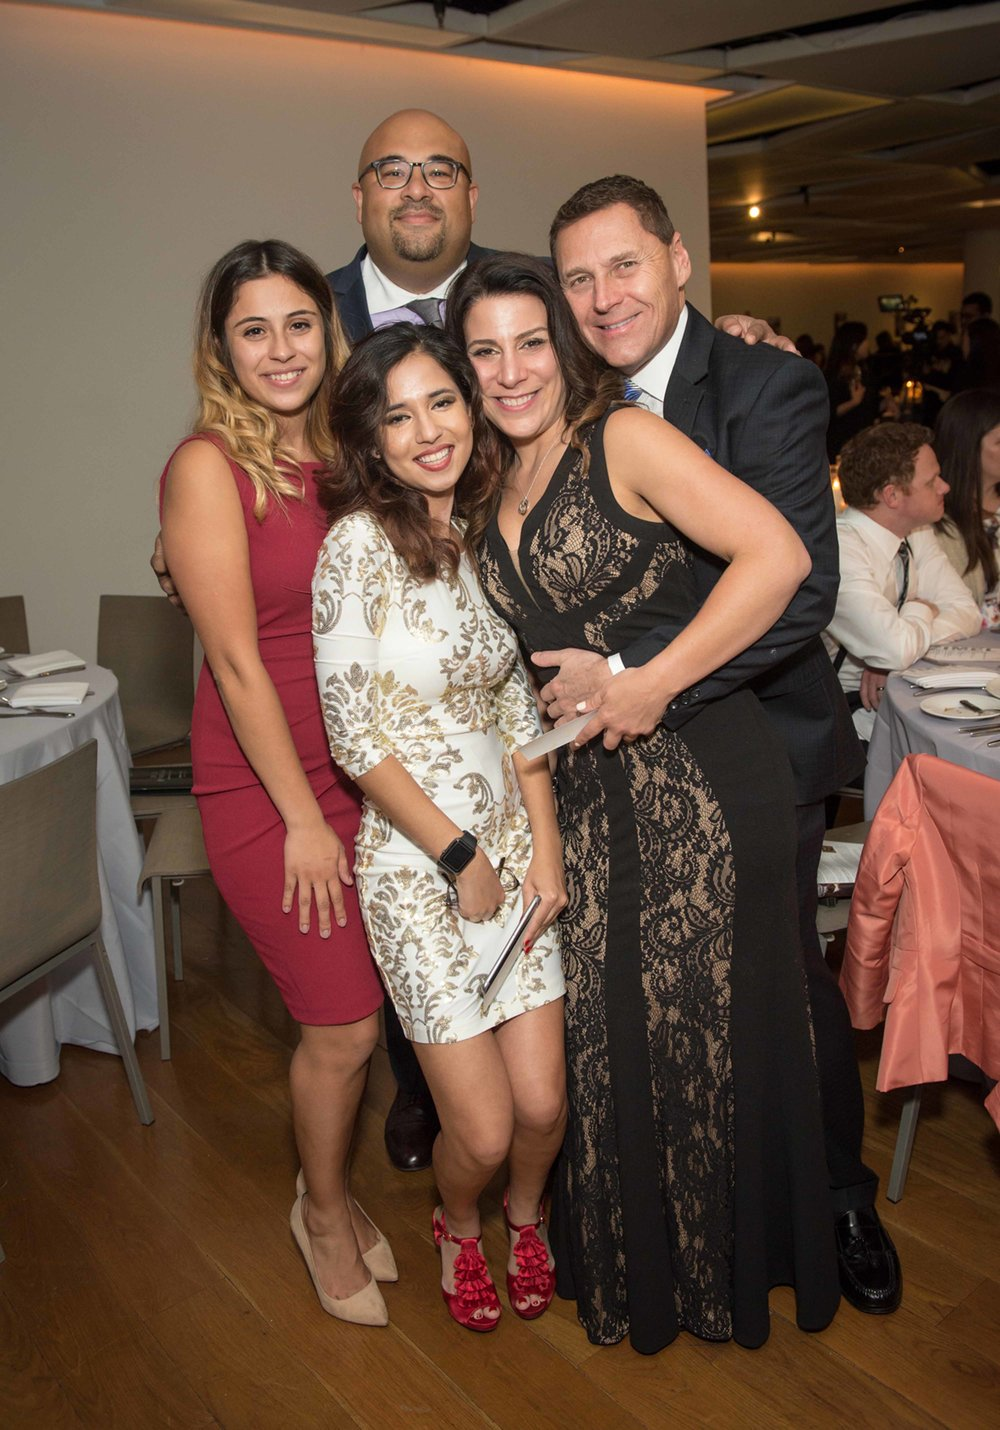 2017-10-21 Zimele USA 6th Annual Gala - Maritime Parc - Jersey City NJ_0143.jpg